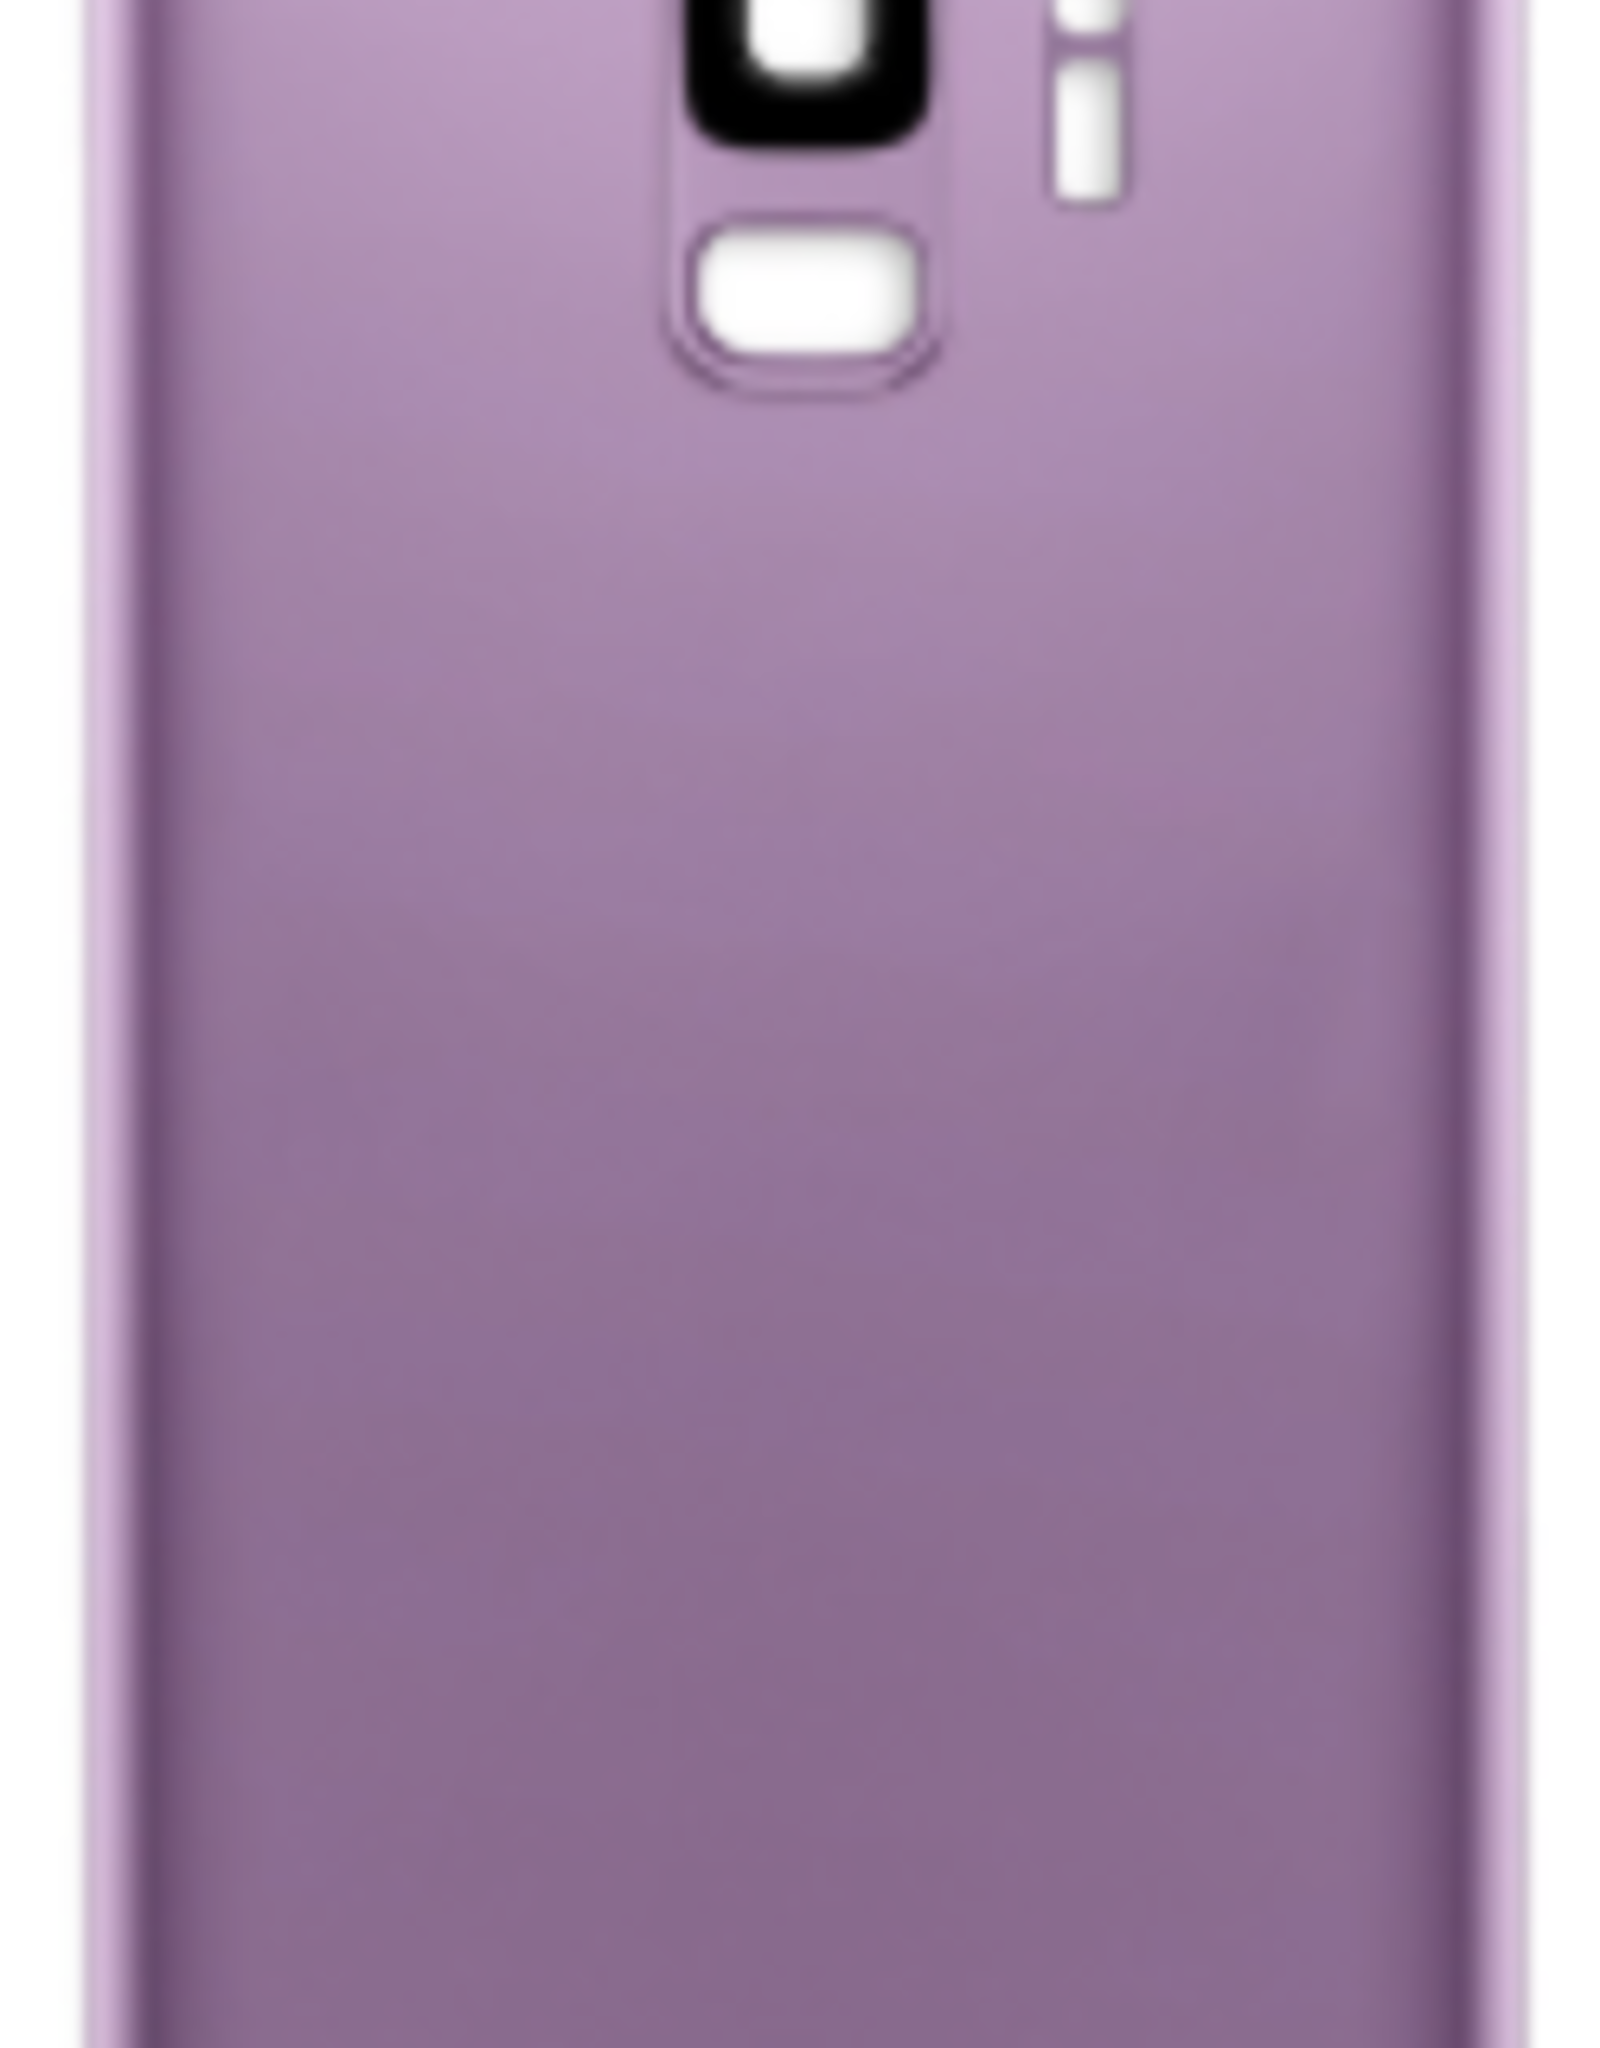 Samsung S9 Purple Back Glass Replacement